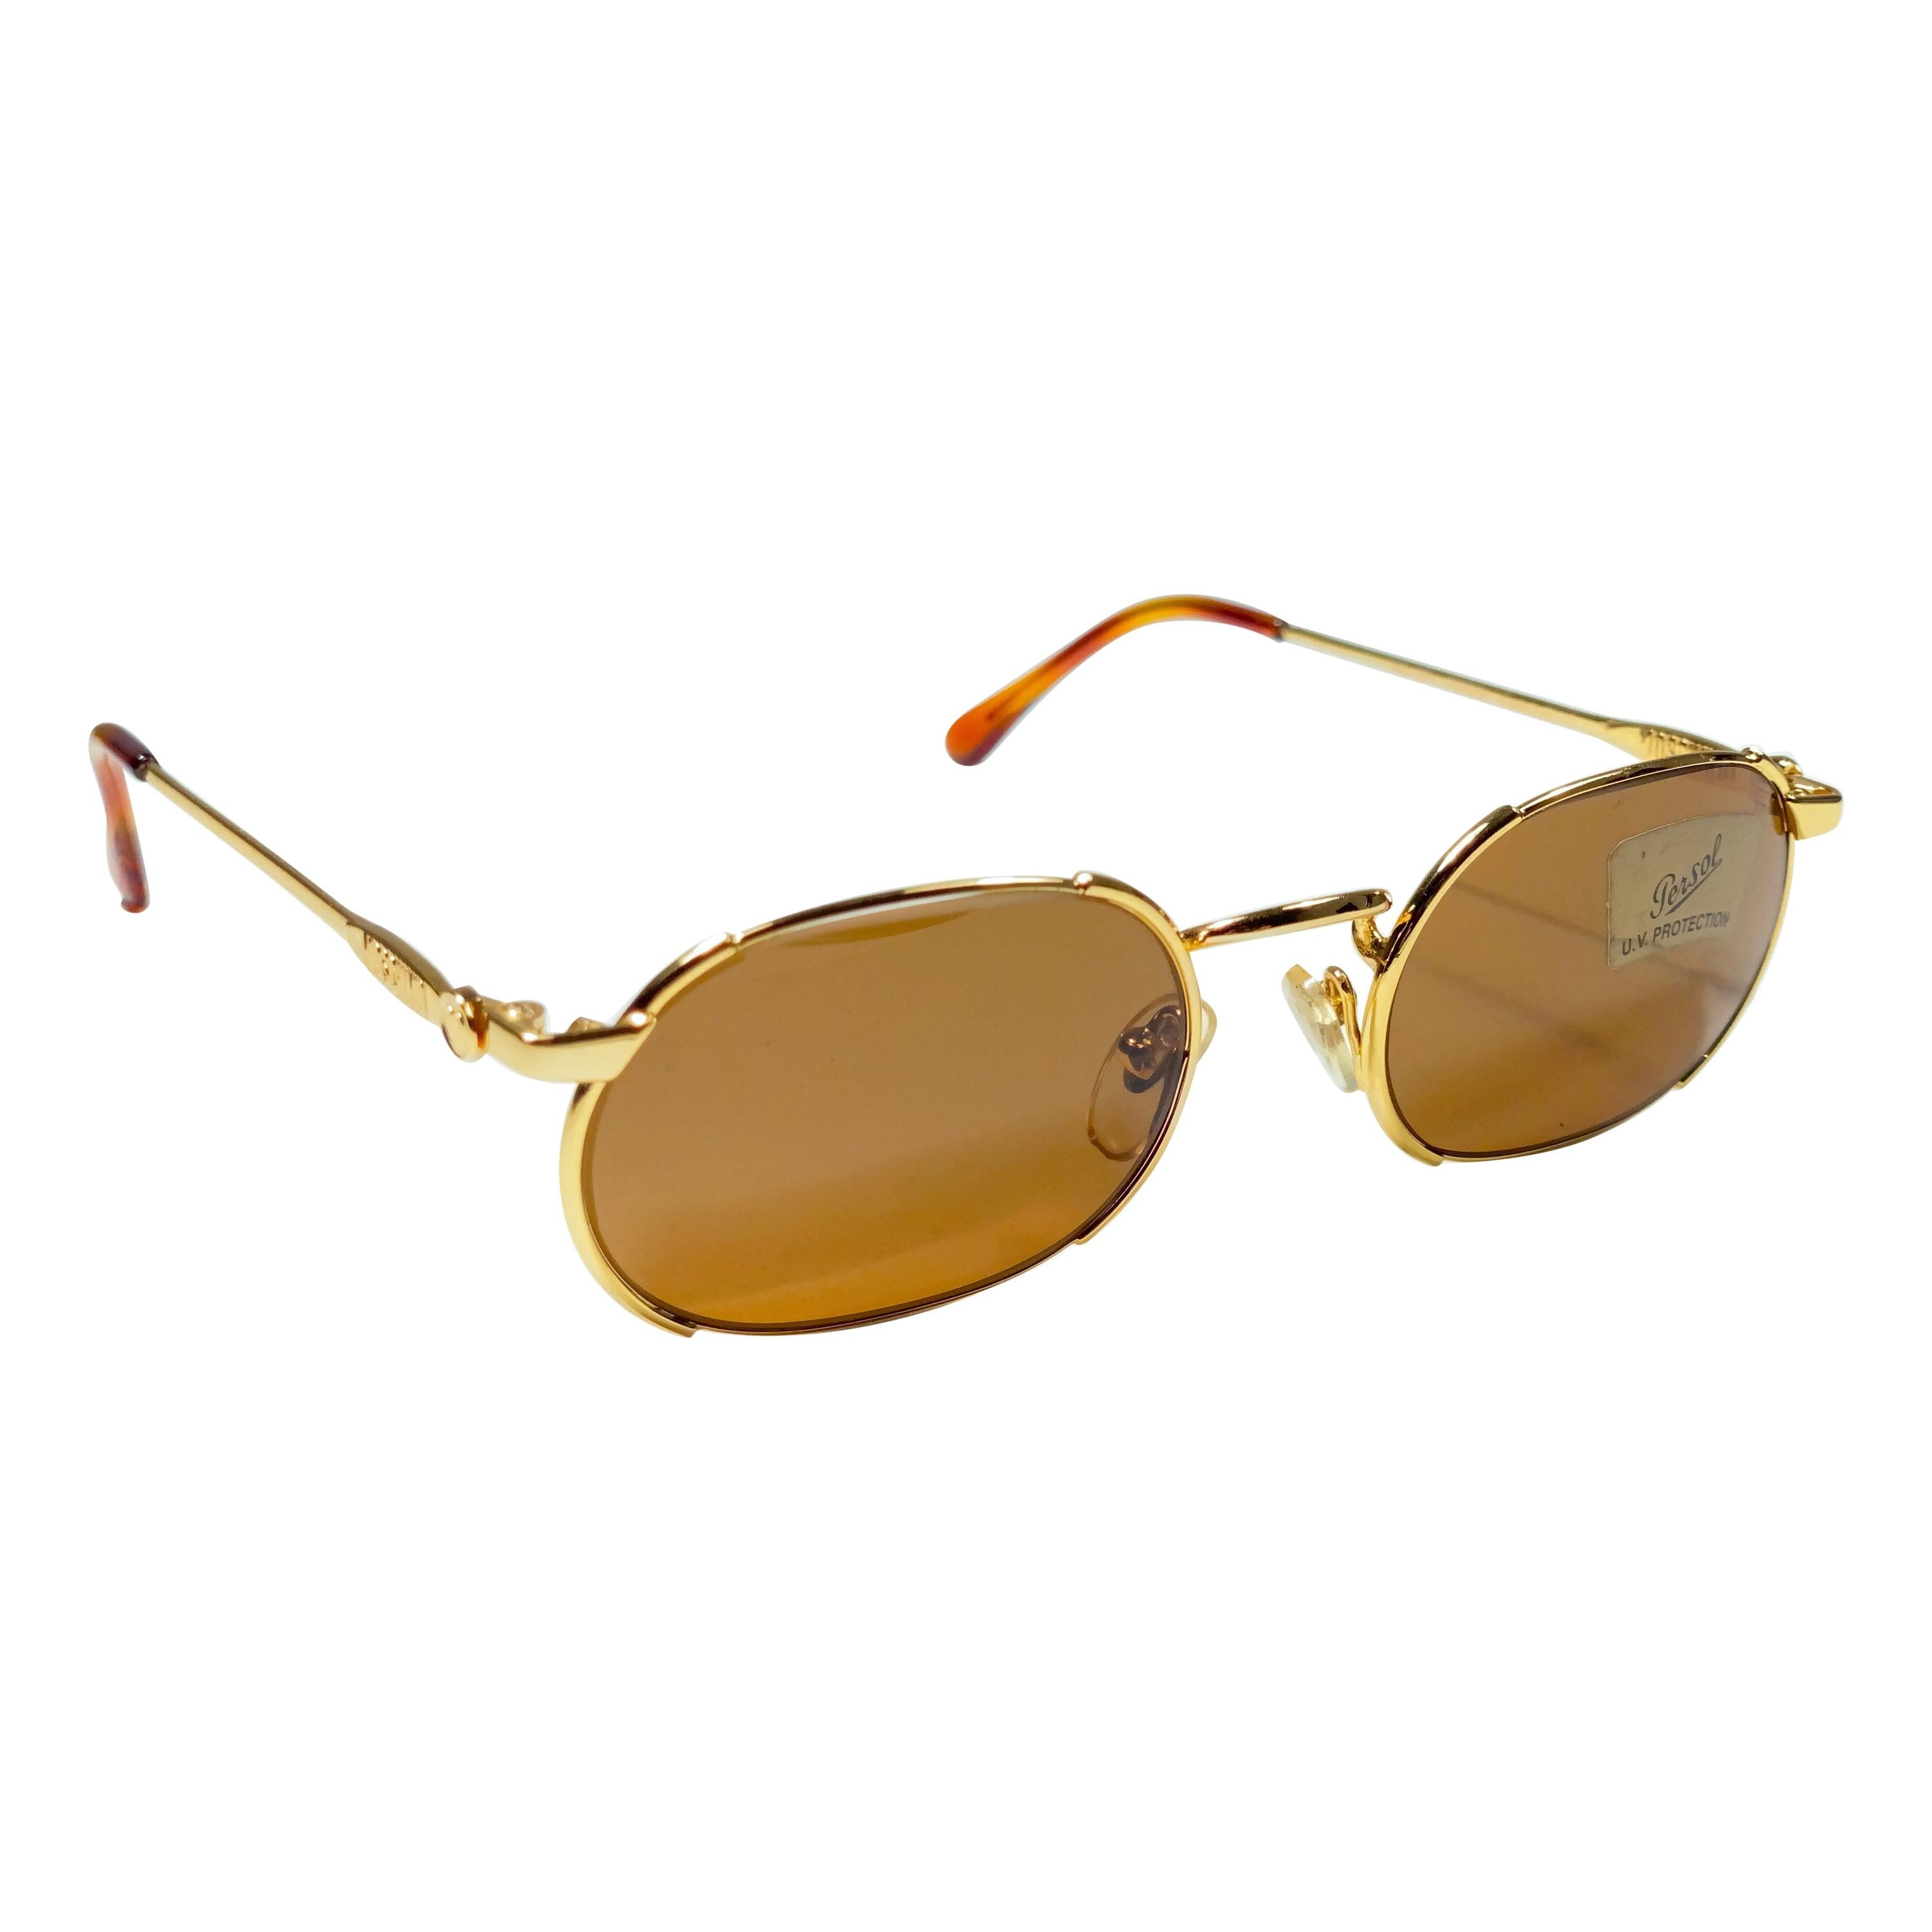 New Vintage Moschino By Persol MM483 Small Frame Gold 1990 Sunglasses Italy